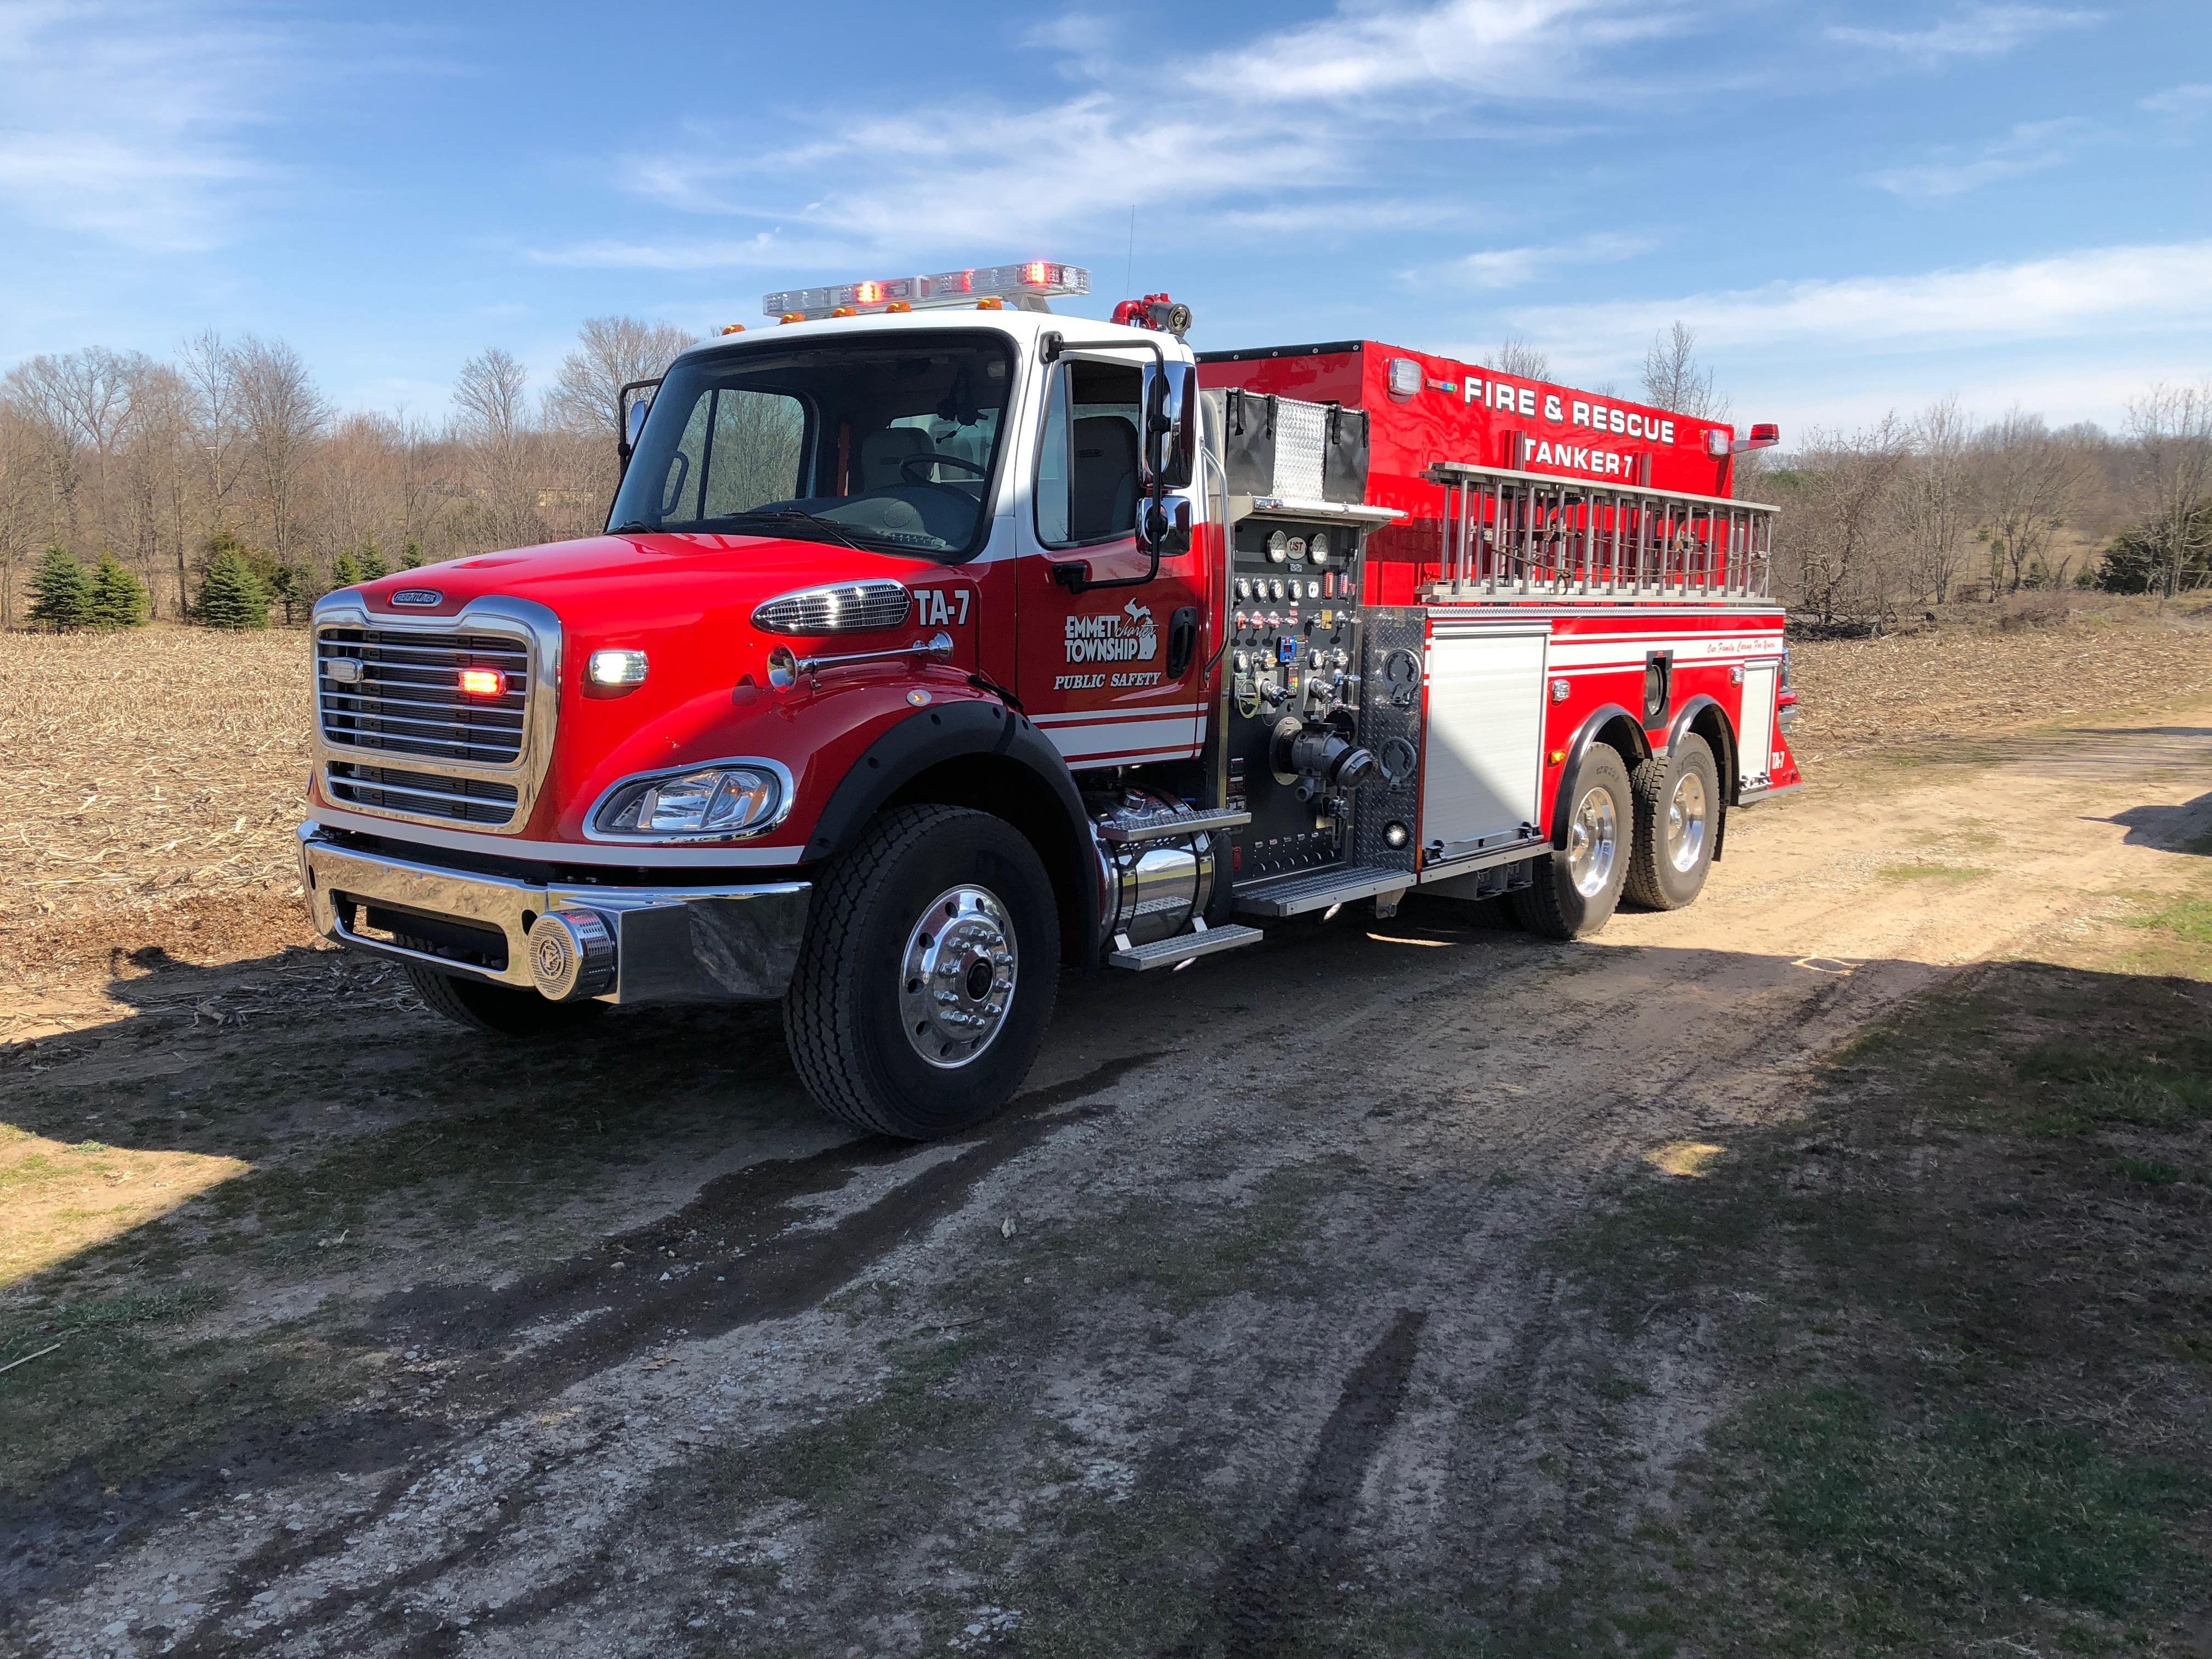 According to Marshall Township fire chief, a controlled burn that got out of hand due to wind conditions at 14693 L Drive North has now burned upwards of 25 acres. Although the fire is mostly under control now, fire officials are still working to get it under control. (Emmett Township Department of Public Safety)